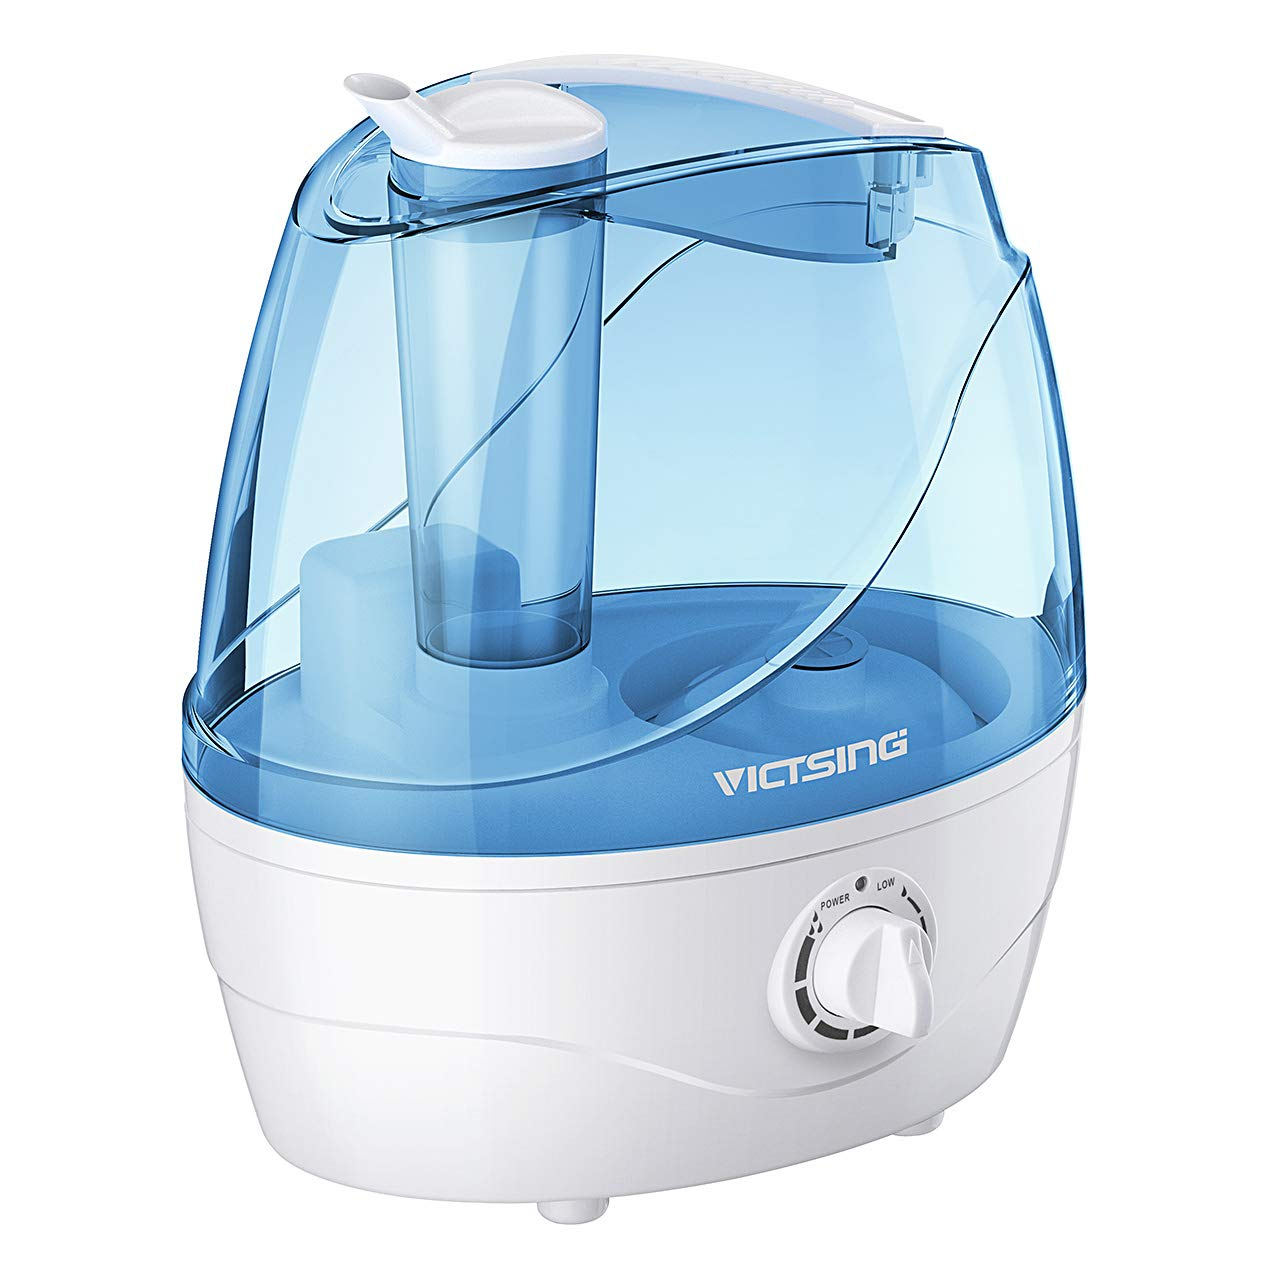 Homasy VicTsing 2.2L Cool Mist Humidifiers, Quiet Ultrasonic Humidifiers for Bedroom Baby, Easy to Clean Baby Humidifier, Last Up to 24 Hours, Auto Shut-Off, Anti-Slip Handle, Adjustable Mist Output by Homasy